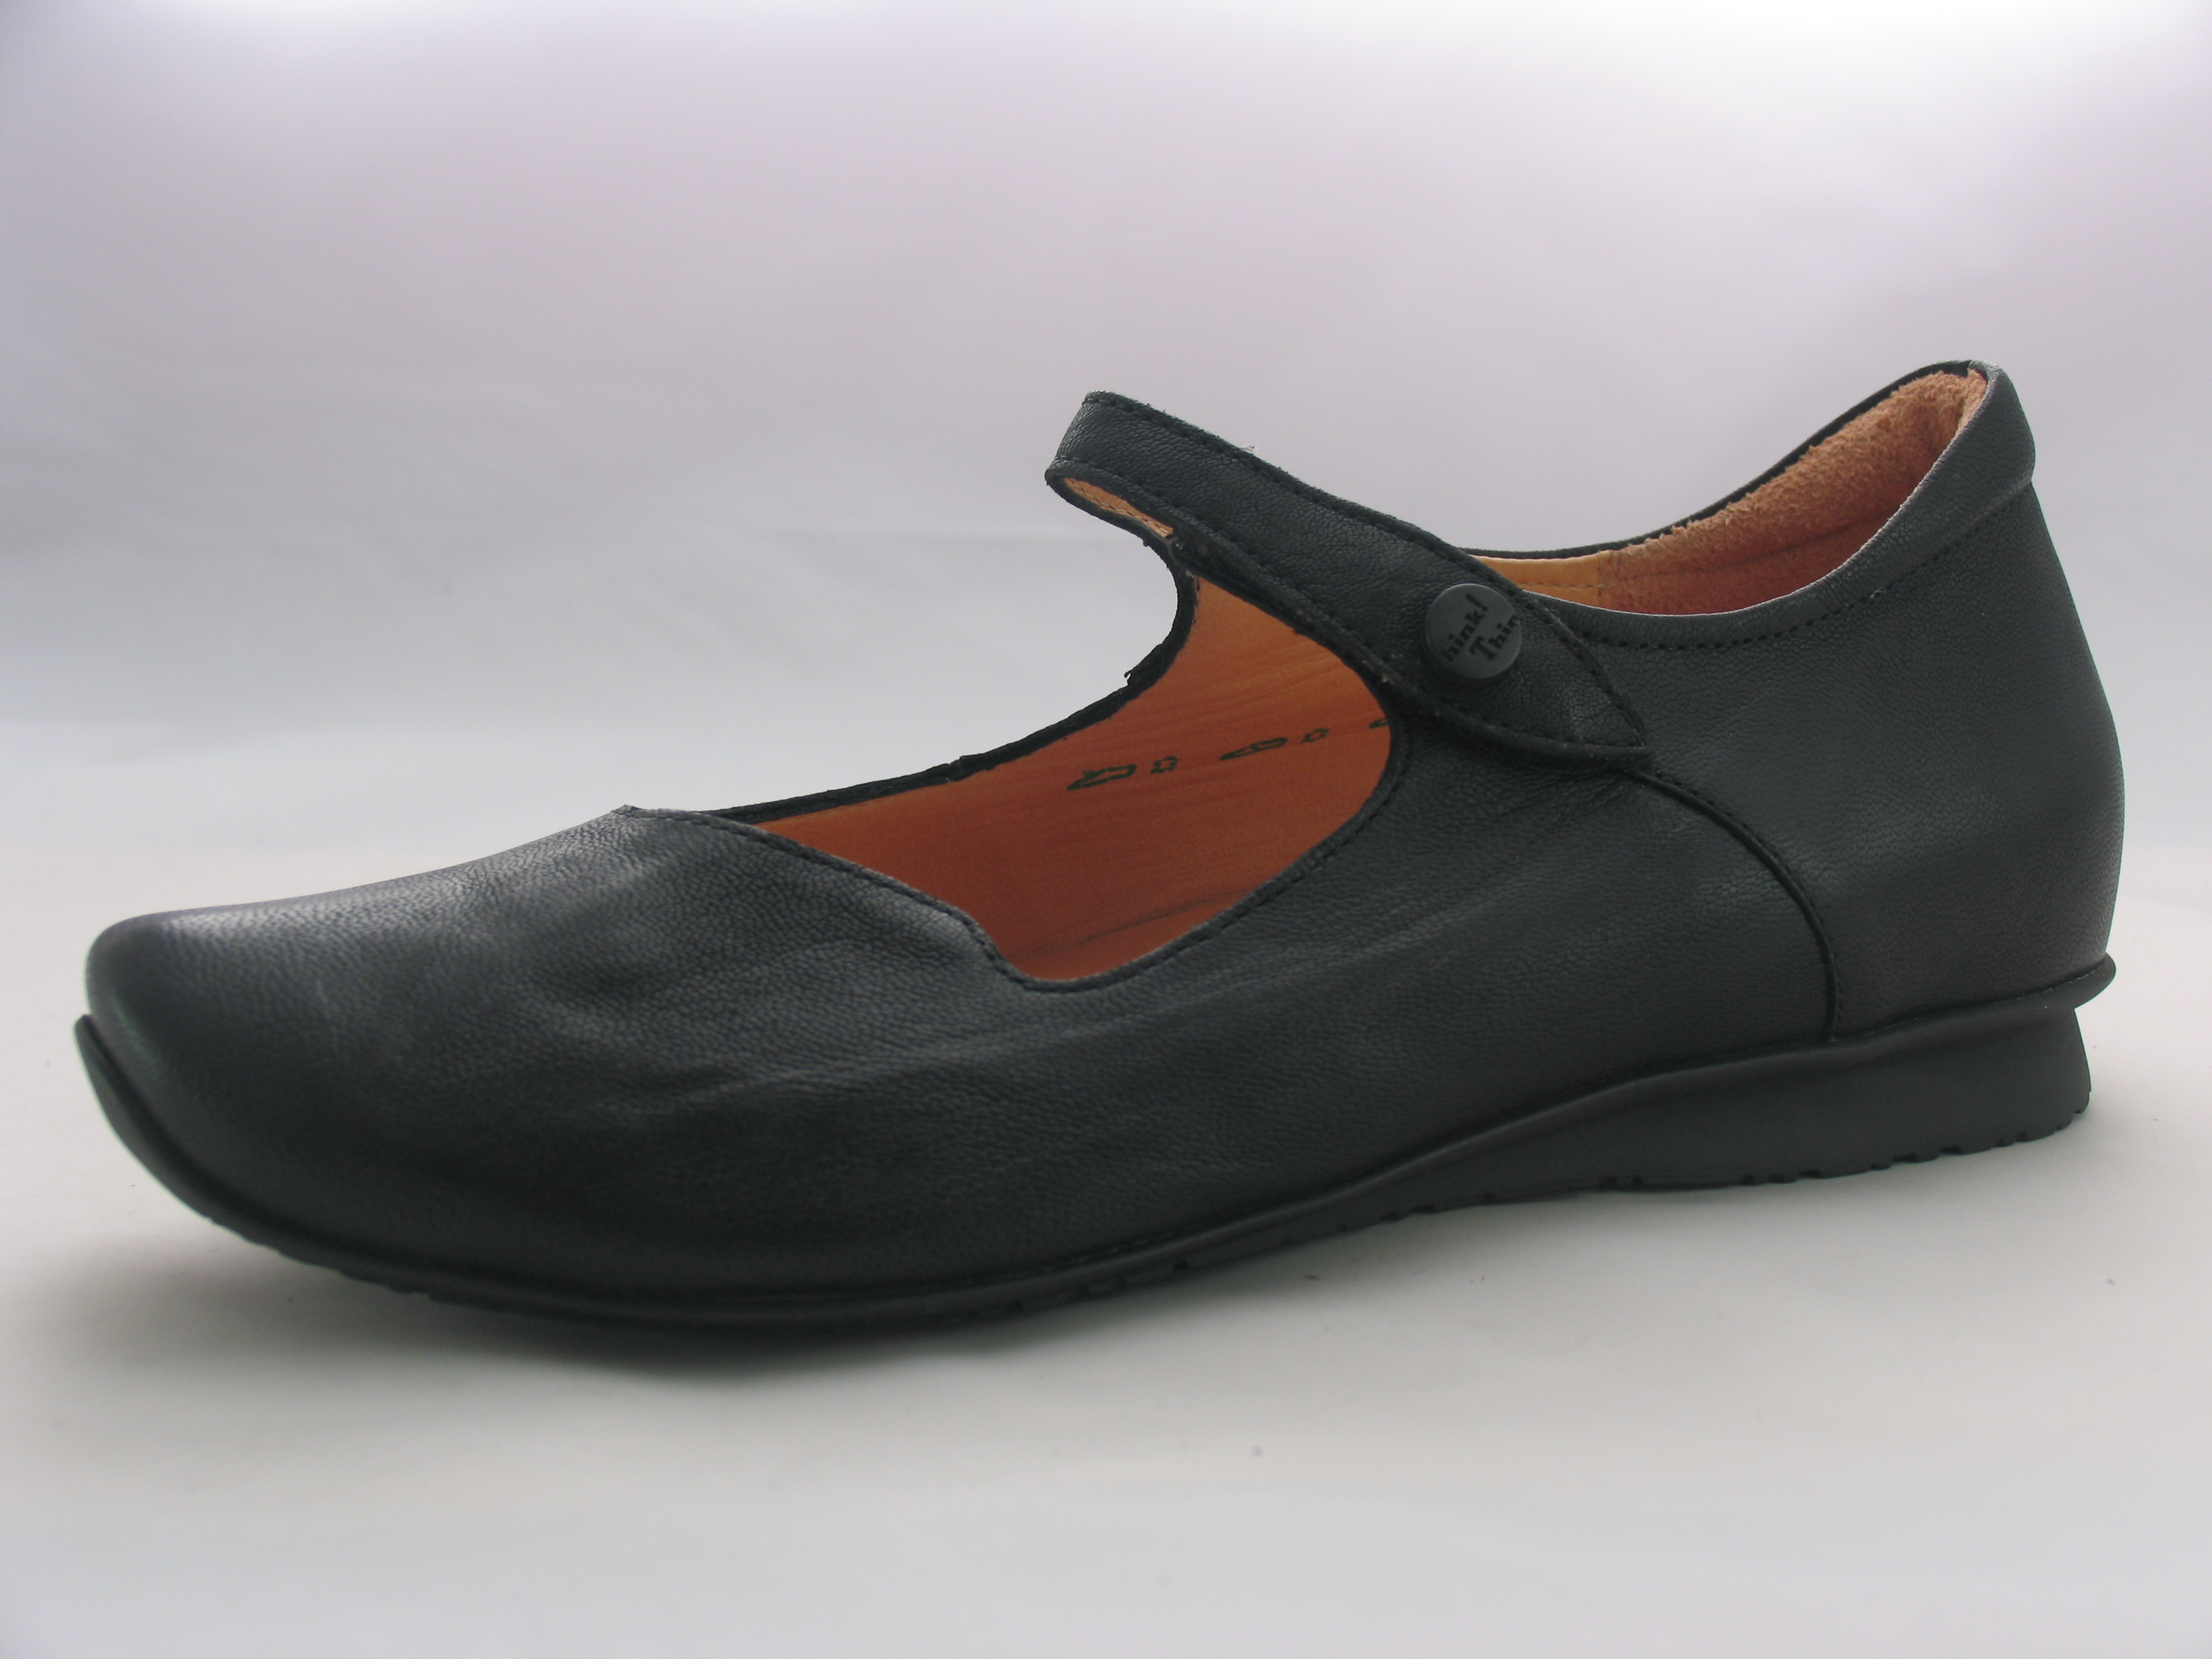 s think chilli 80107 black green leather bar shoes